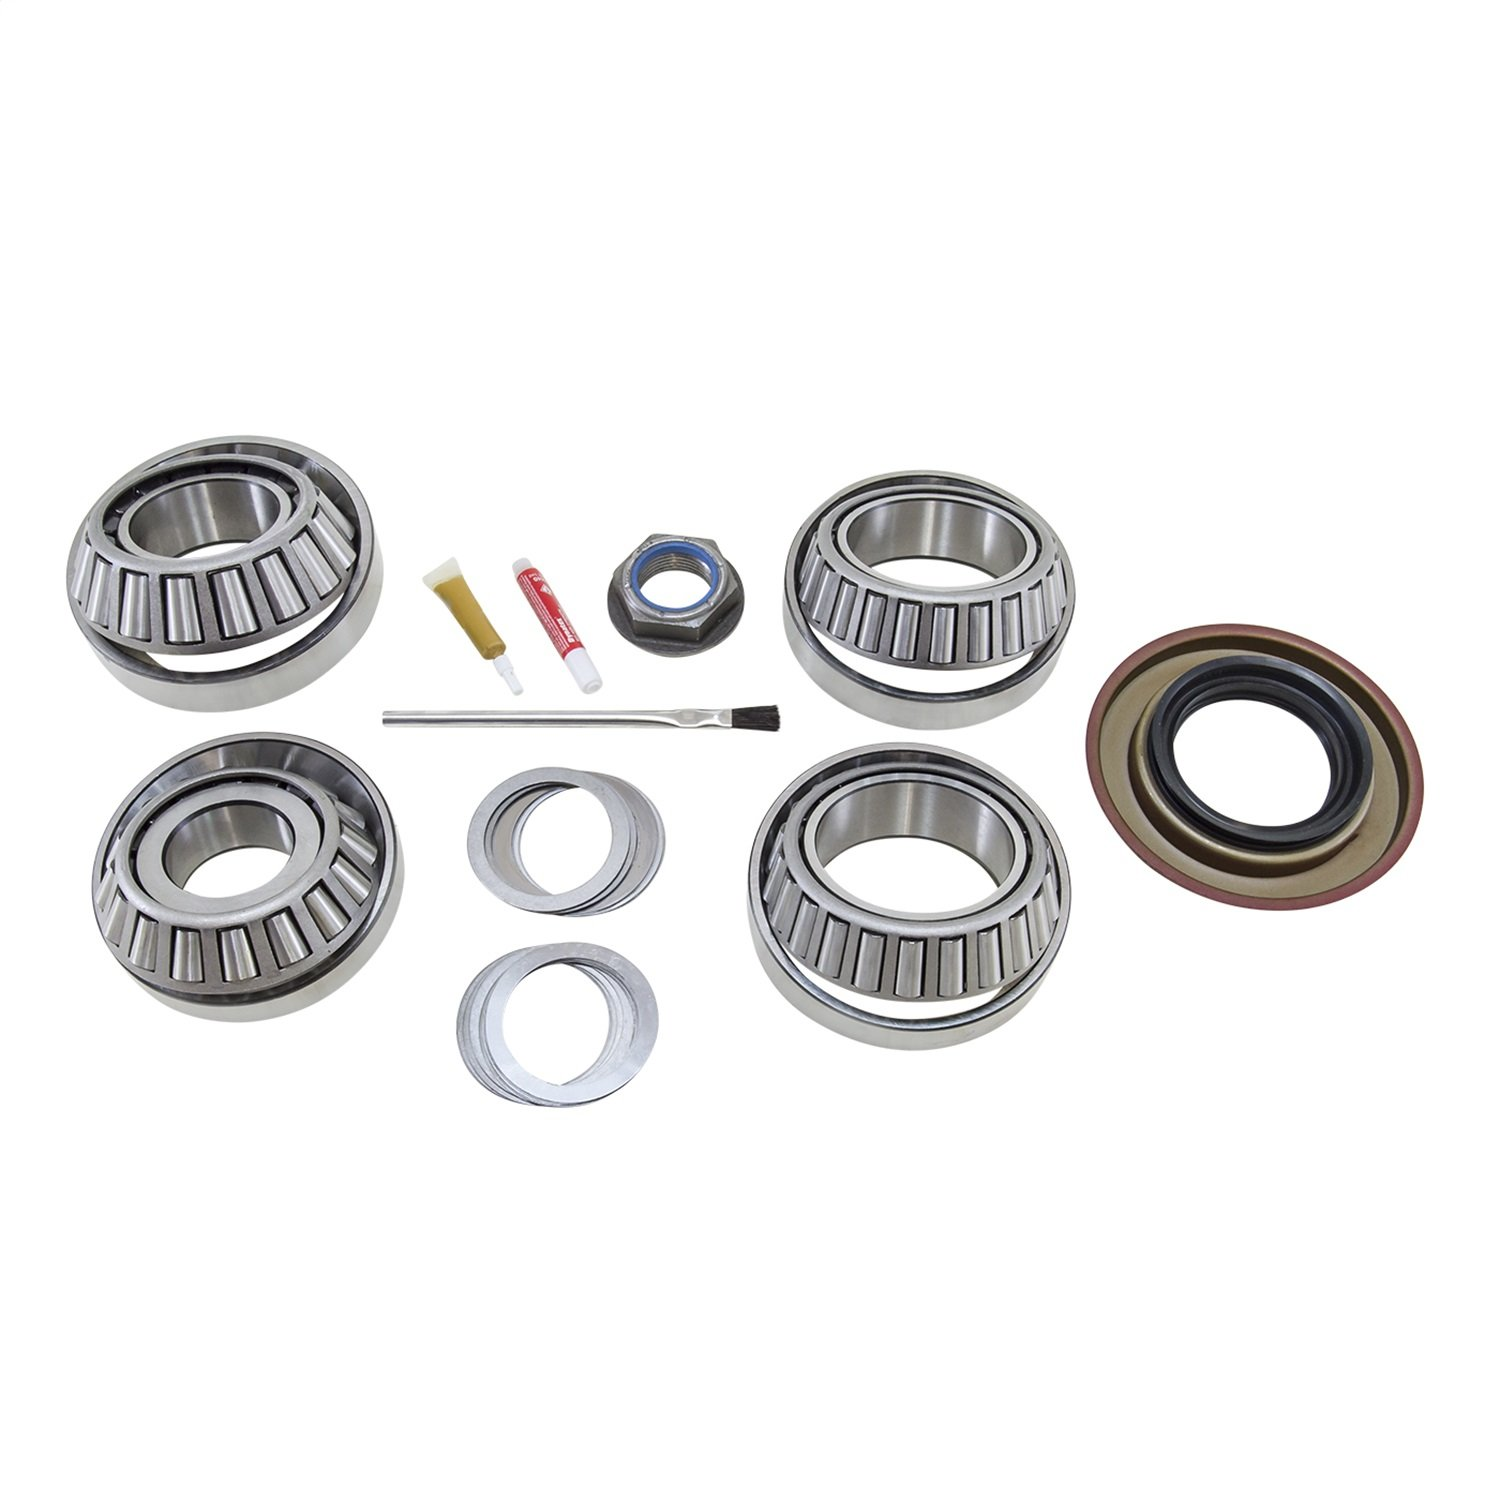 Yukon Gear & Axle (YK DS110) Master Overhaul Kit for Dana S110 by Yukon Gear